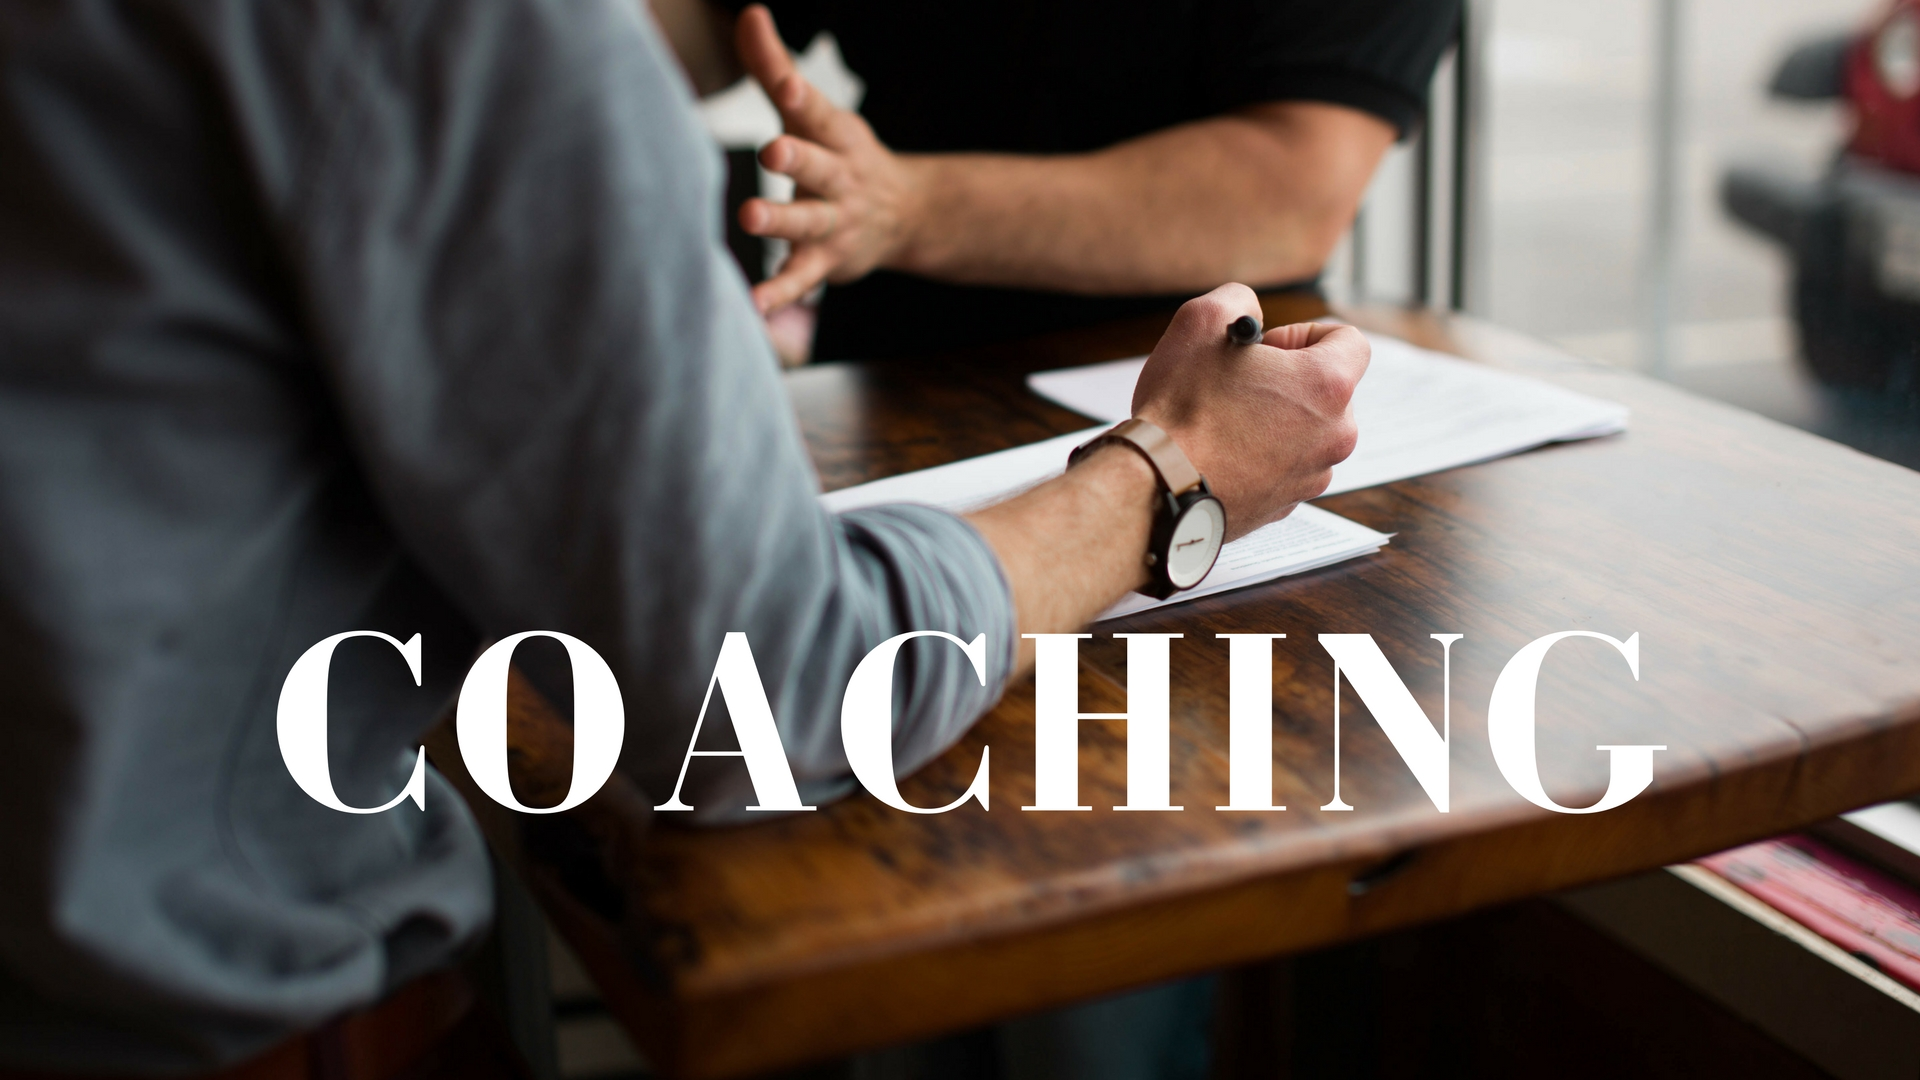 COaching - We coach individuals, companies, marketers, sales teams and entrepreneurs how to build relationships and influence with story.